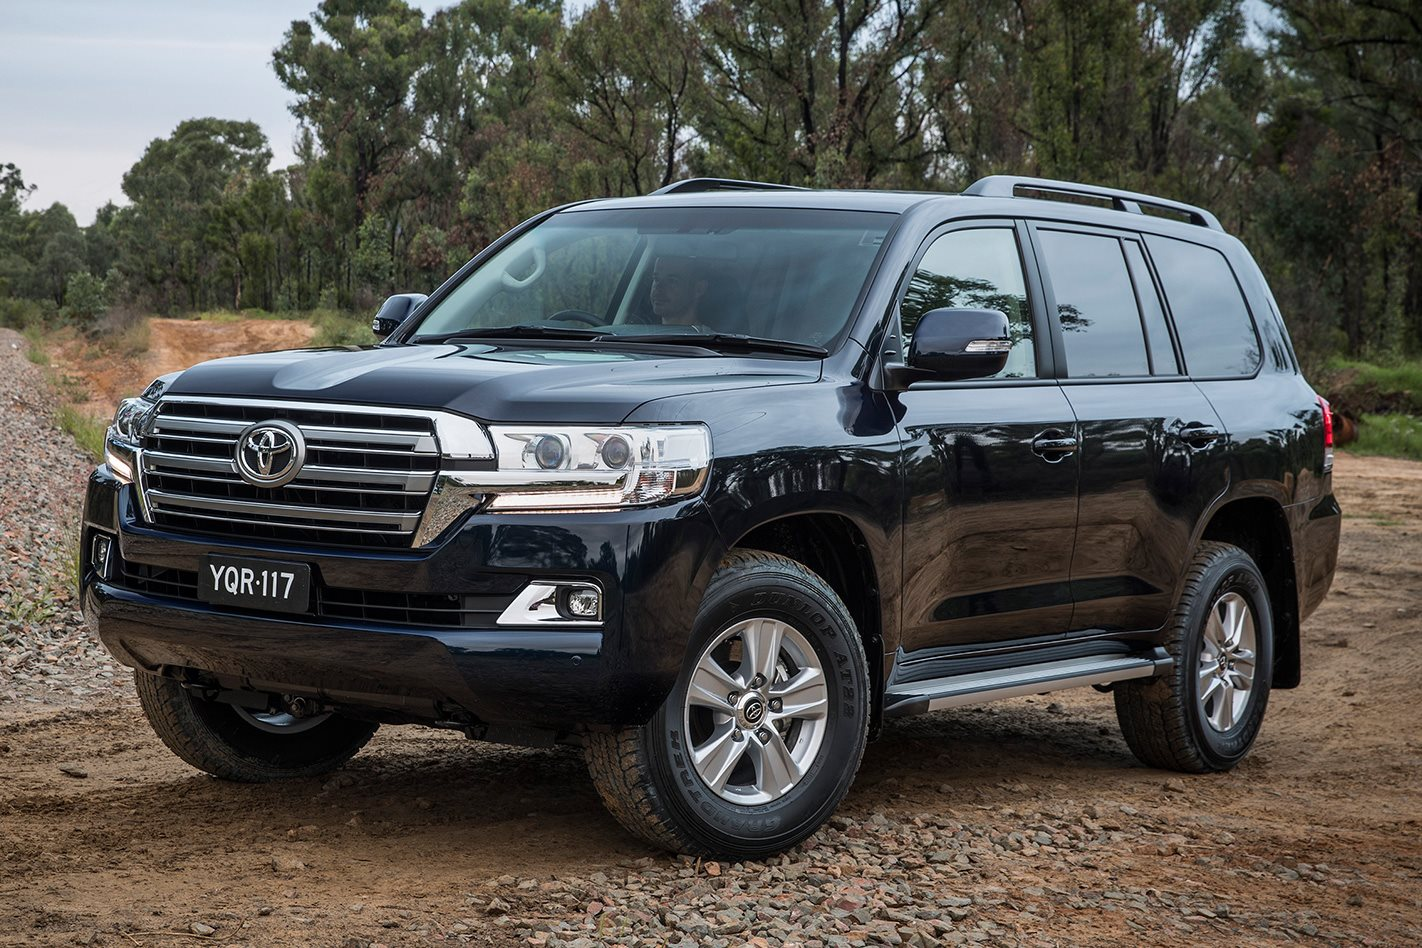 australia leads global toyota land cruiser sales 4x4 australia. Black Bedroom Furniture Sets. Home Design Ideas